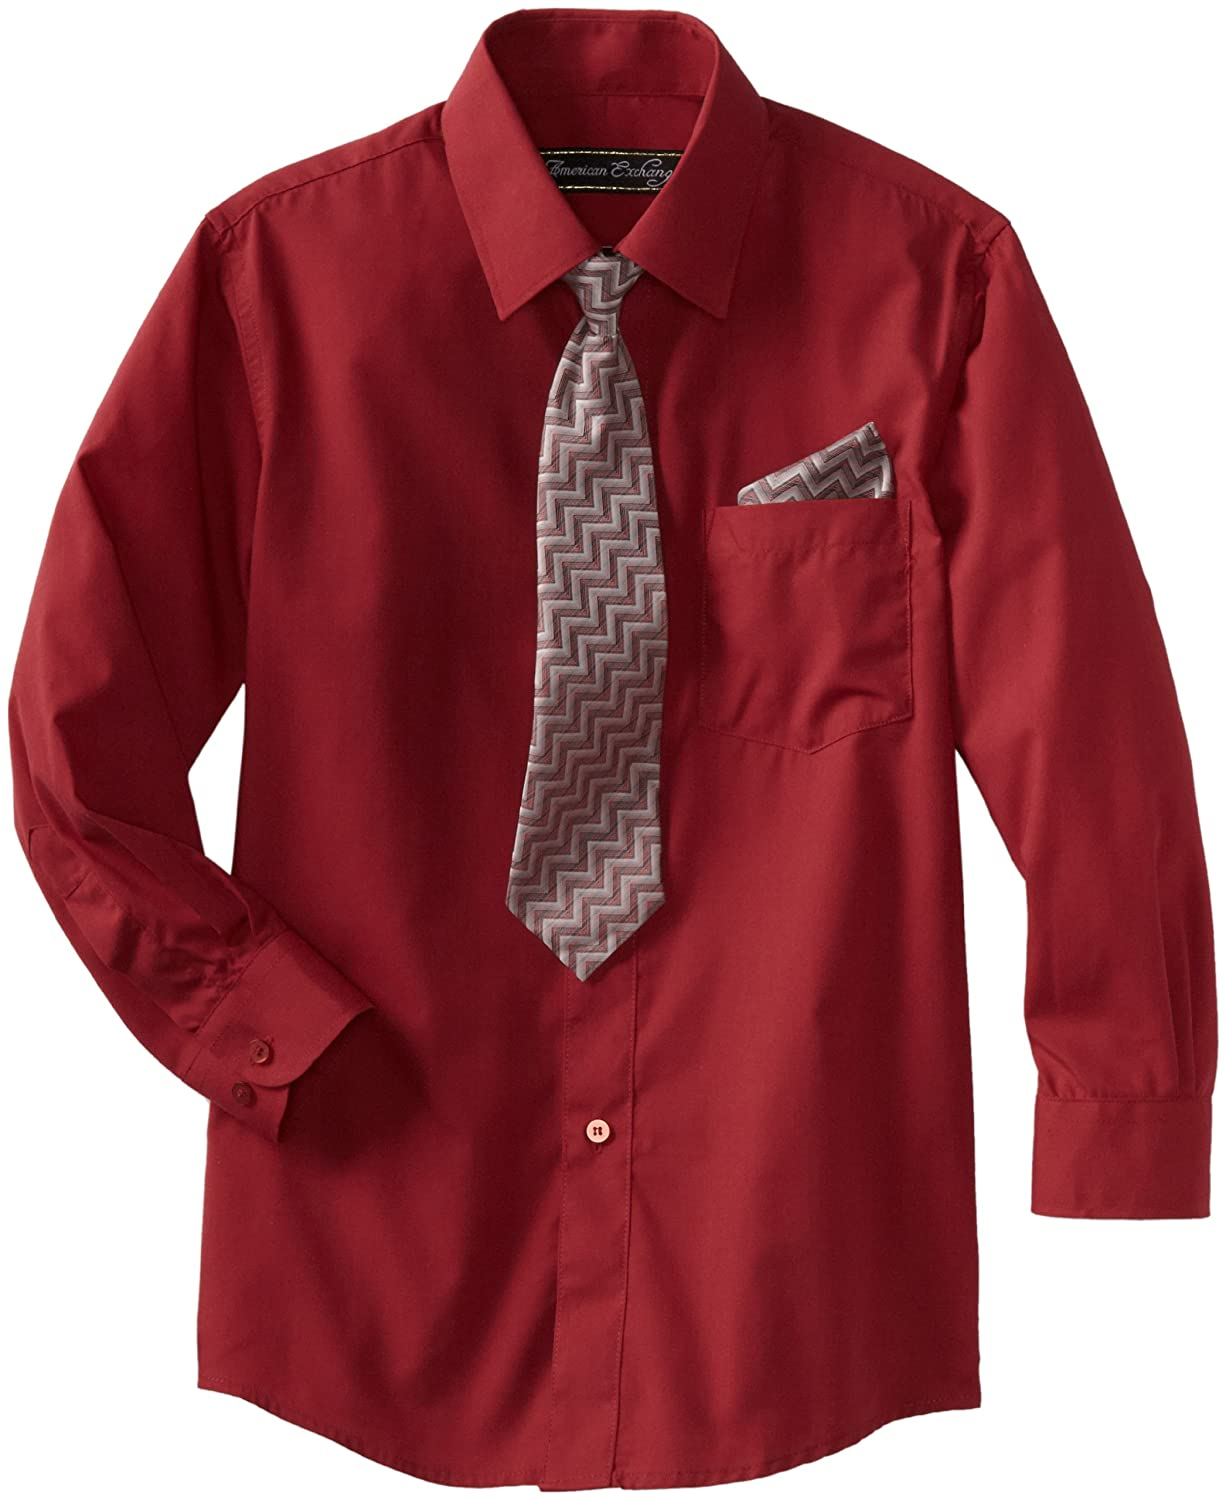 American Exchange Big Boys' Dress Shirt with Tie and Pocket Square Burgundy